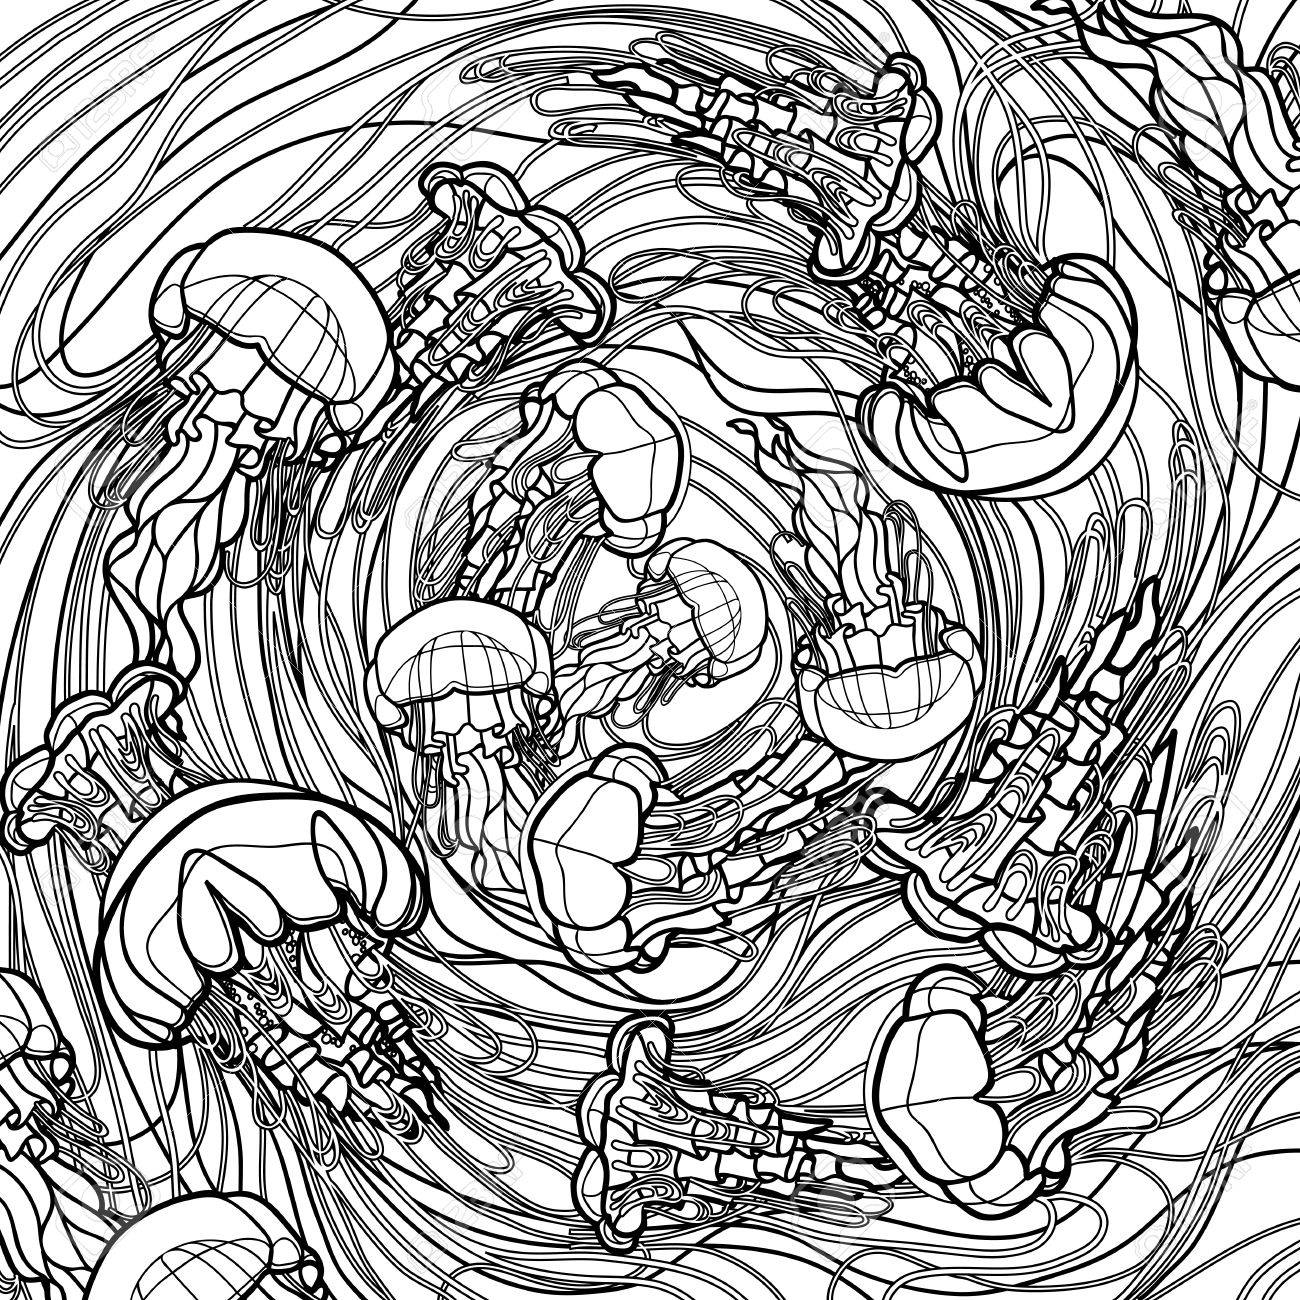 1300x1300 Swirl Of Jellyfish Drawn In Line Art Style. Ocean Card In Black